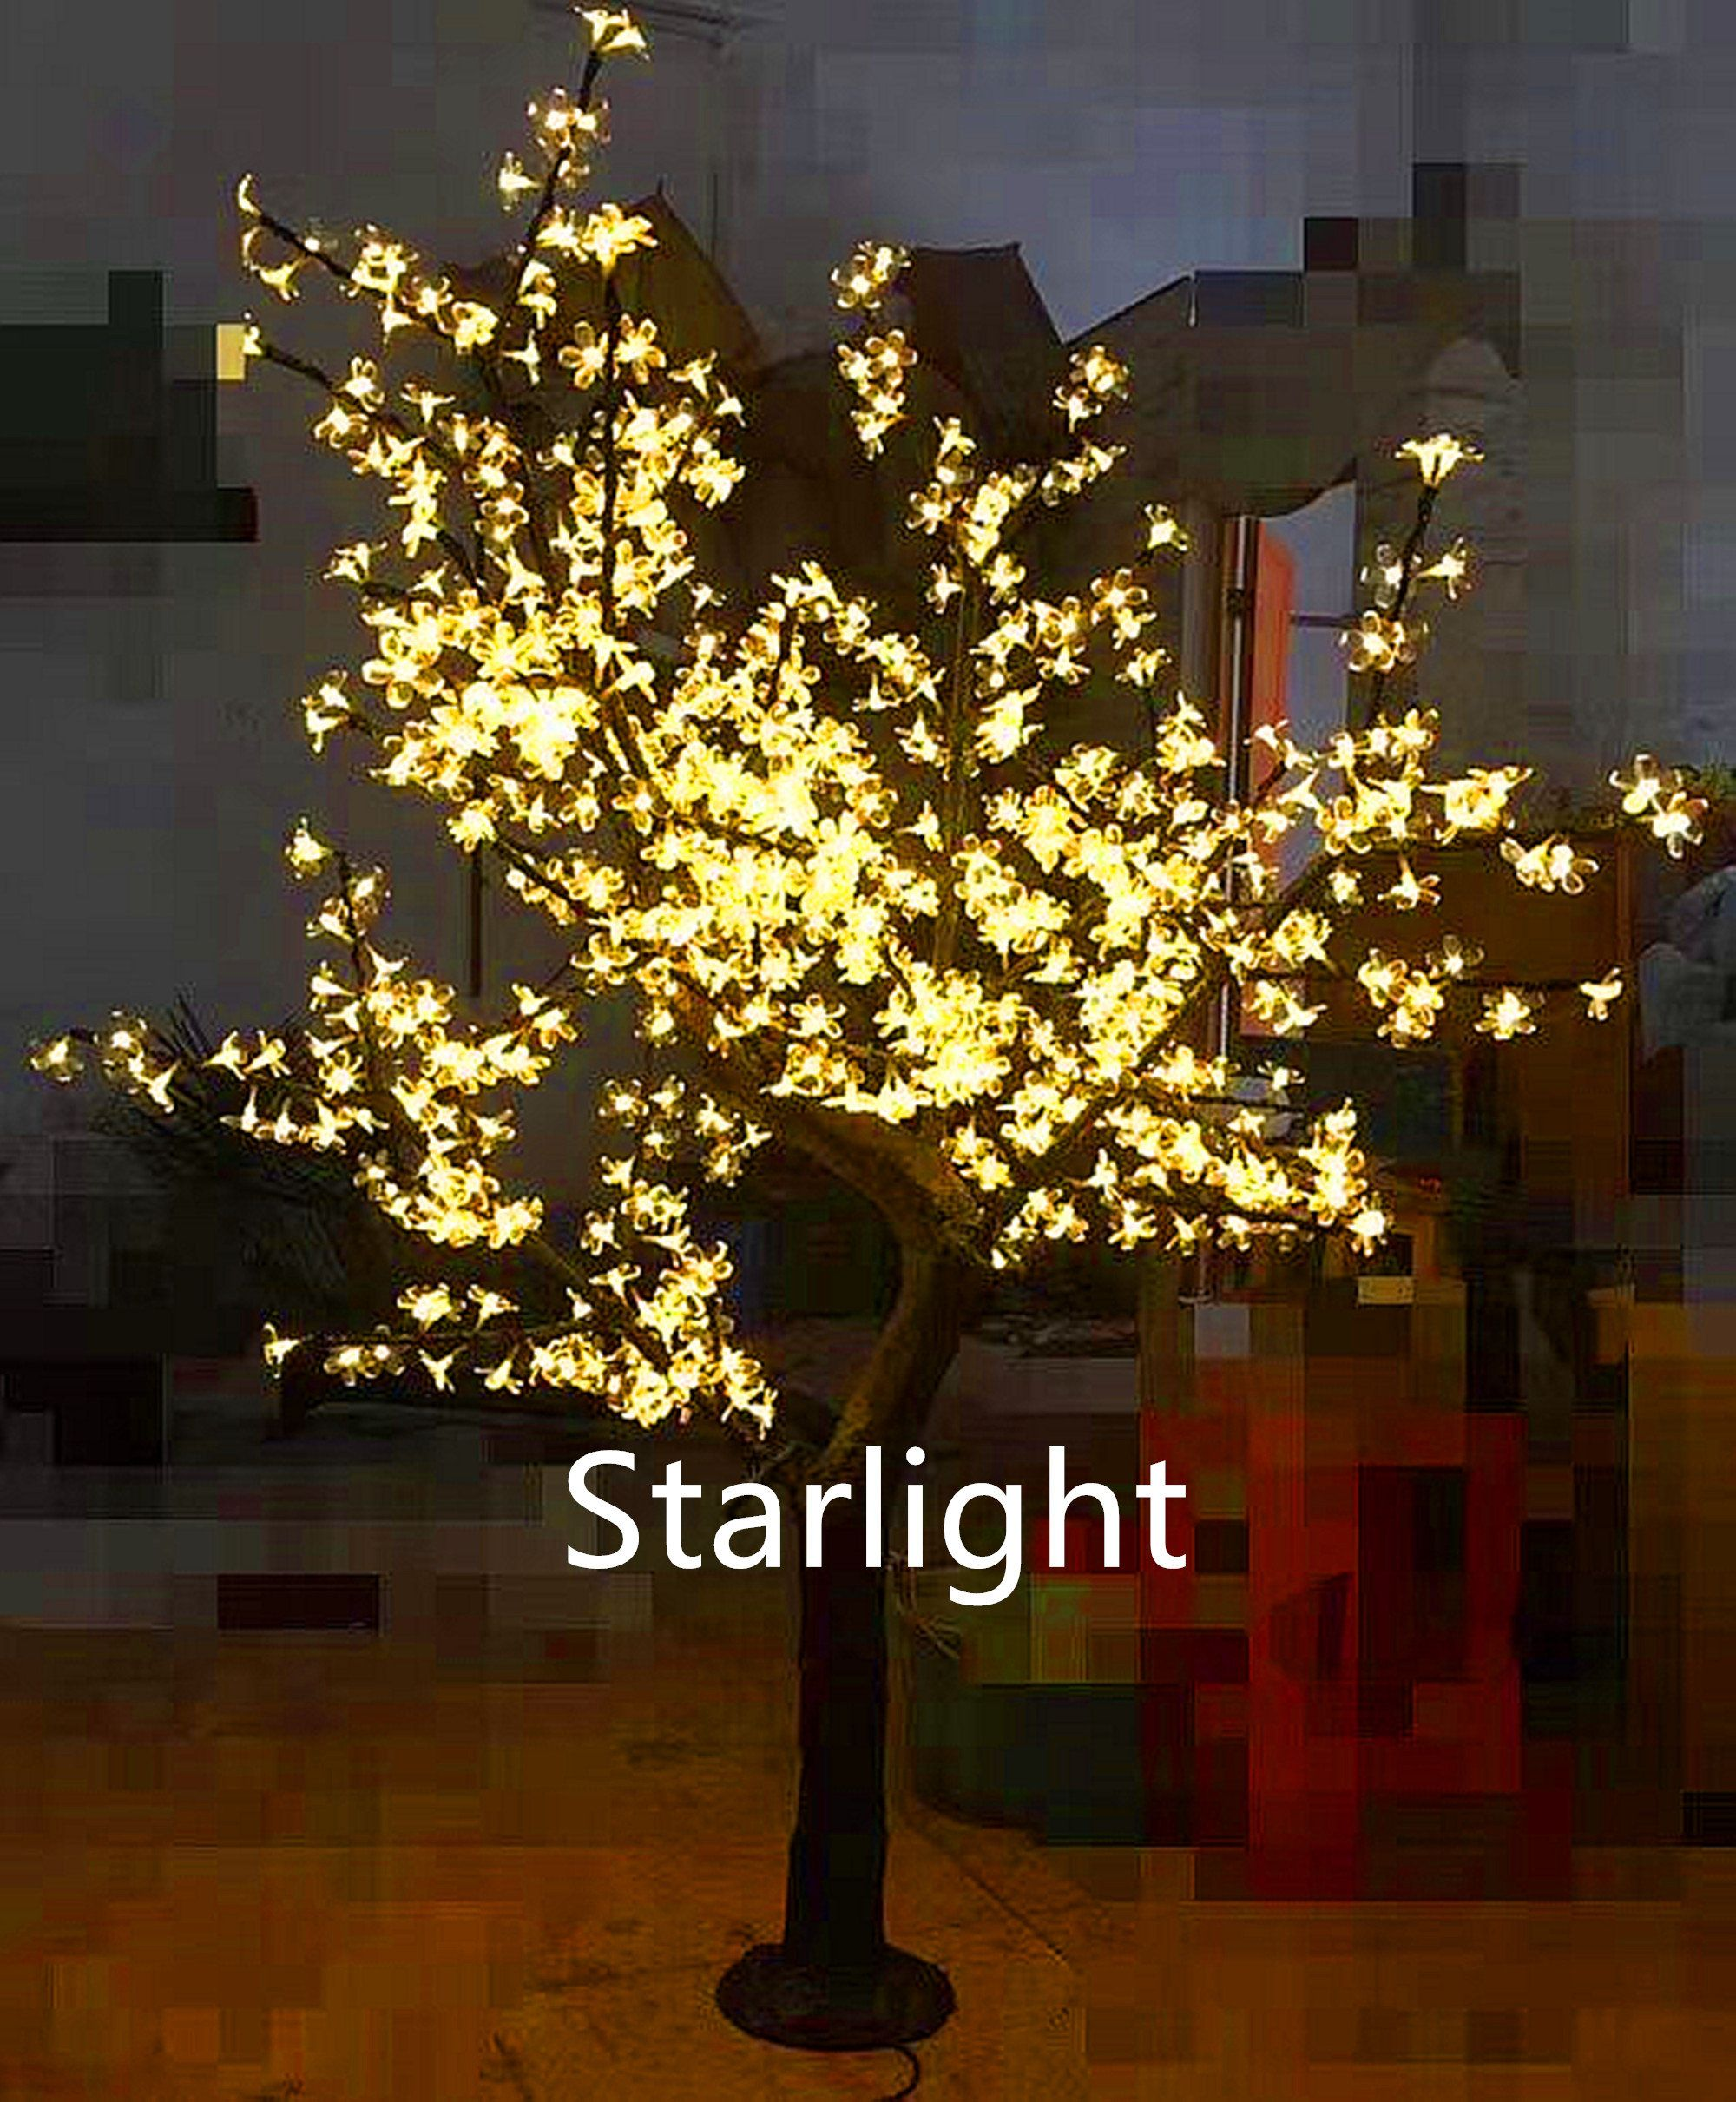 6ft Warm White Led Artificial Christmas Tree Cherry Blossom Etsy Decorative Night Lights Artificial Cherry Blossom Tree Light Up Tree